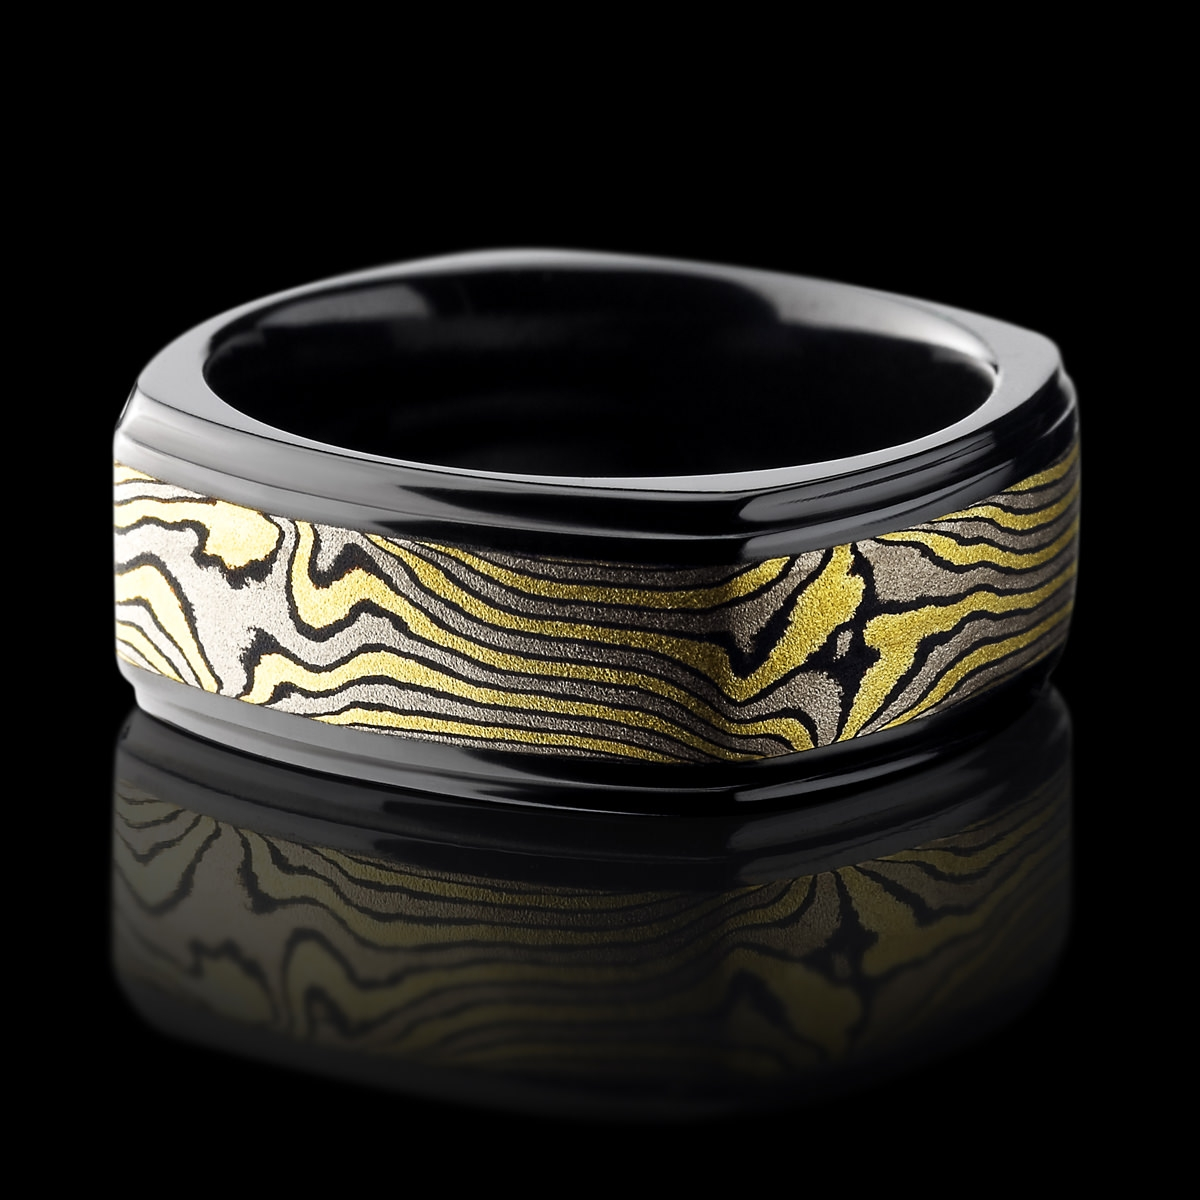 Black Zirconium Ring With Mokume Gane – Lashbrook Designs In Mokume Wedding Bands (View 2 of 15)